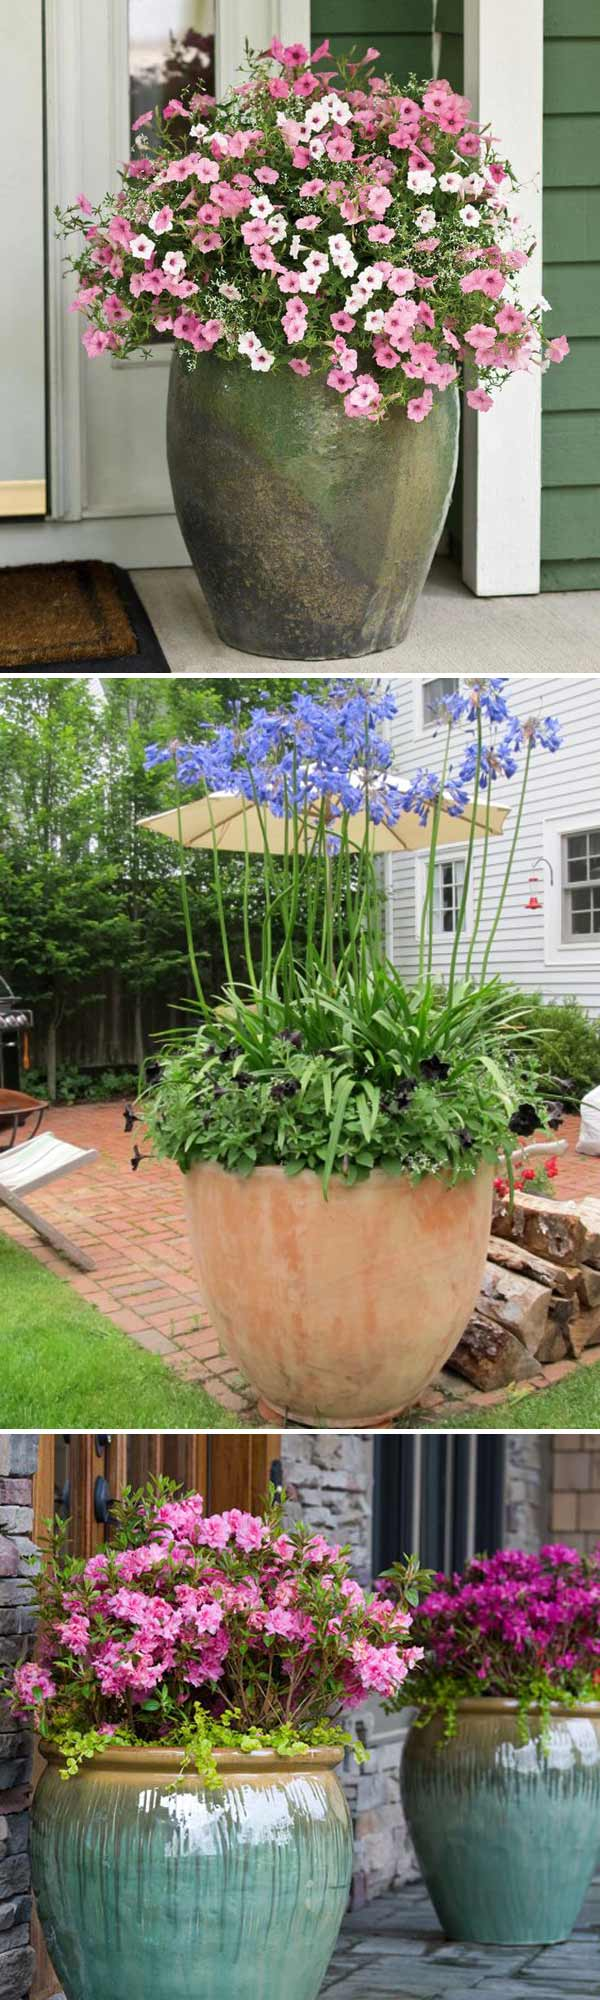 houseing your blooms in a giant glazed clay planter